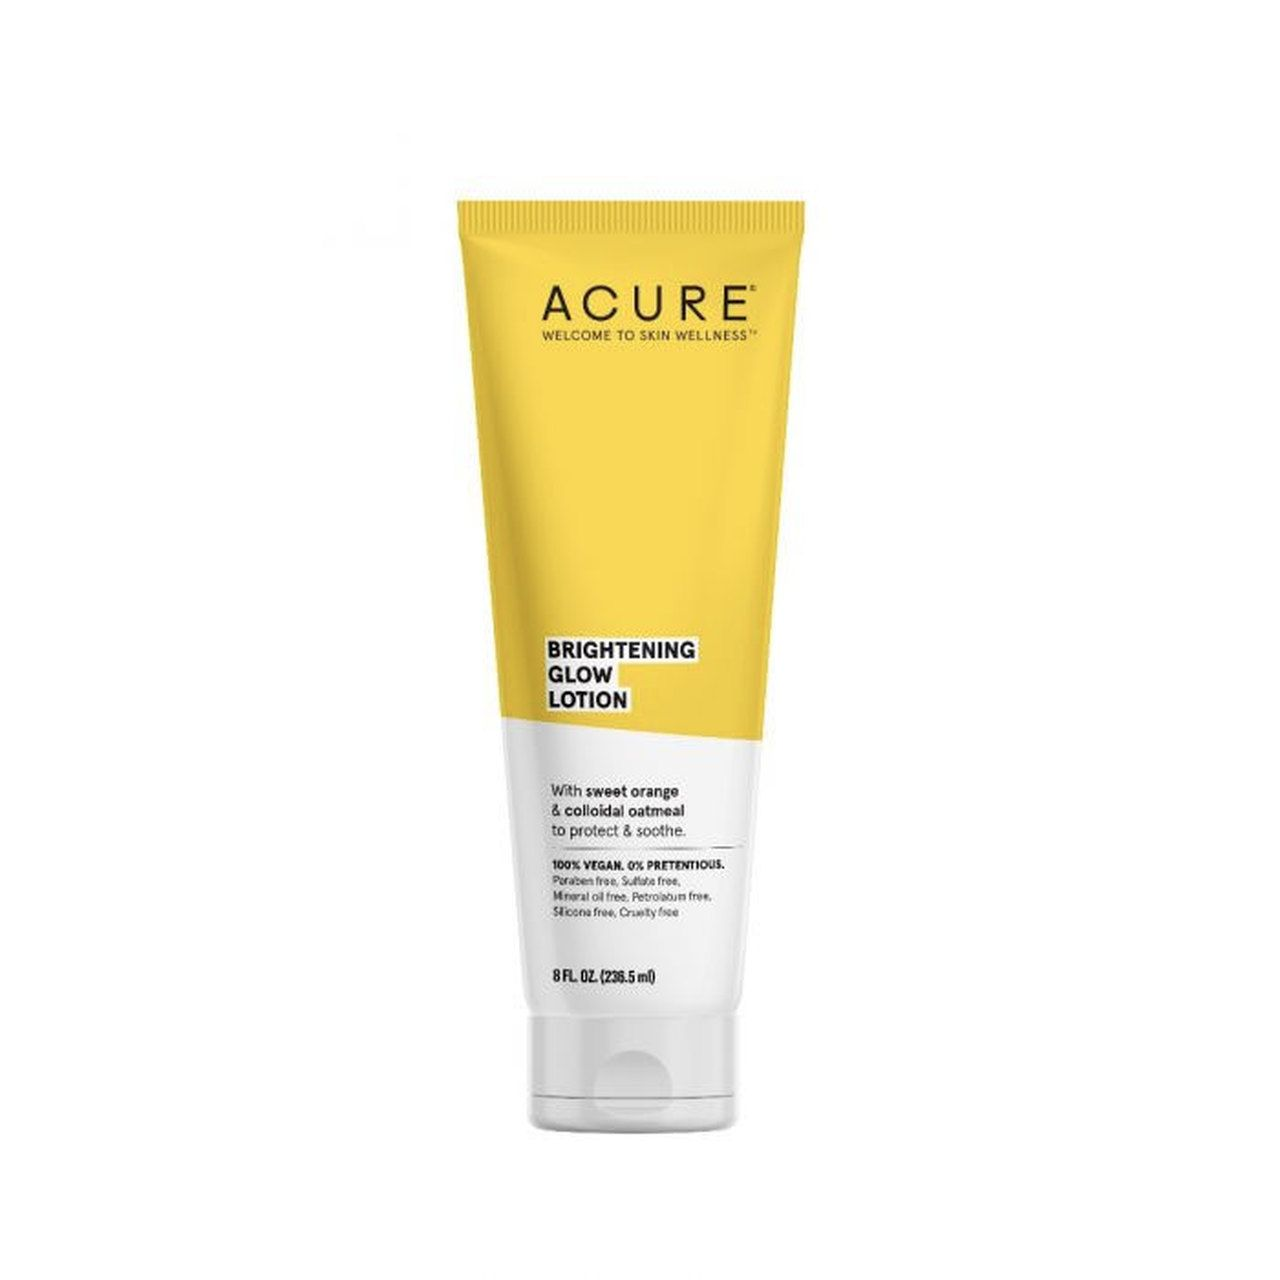 Acure Brilliantly Brightening Glow Lotion